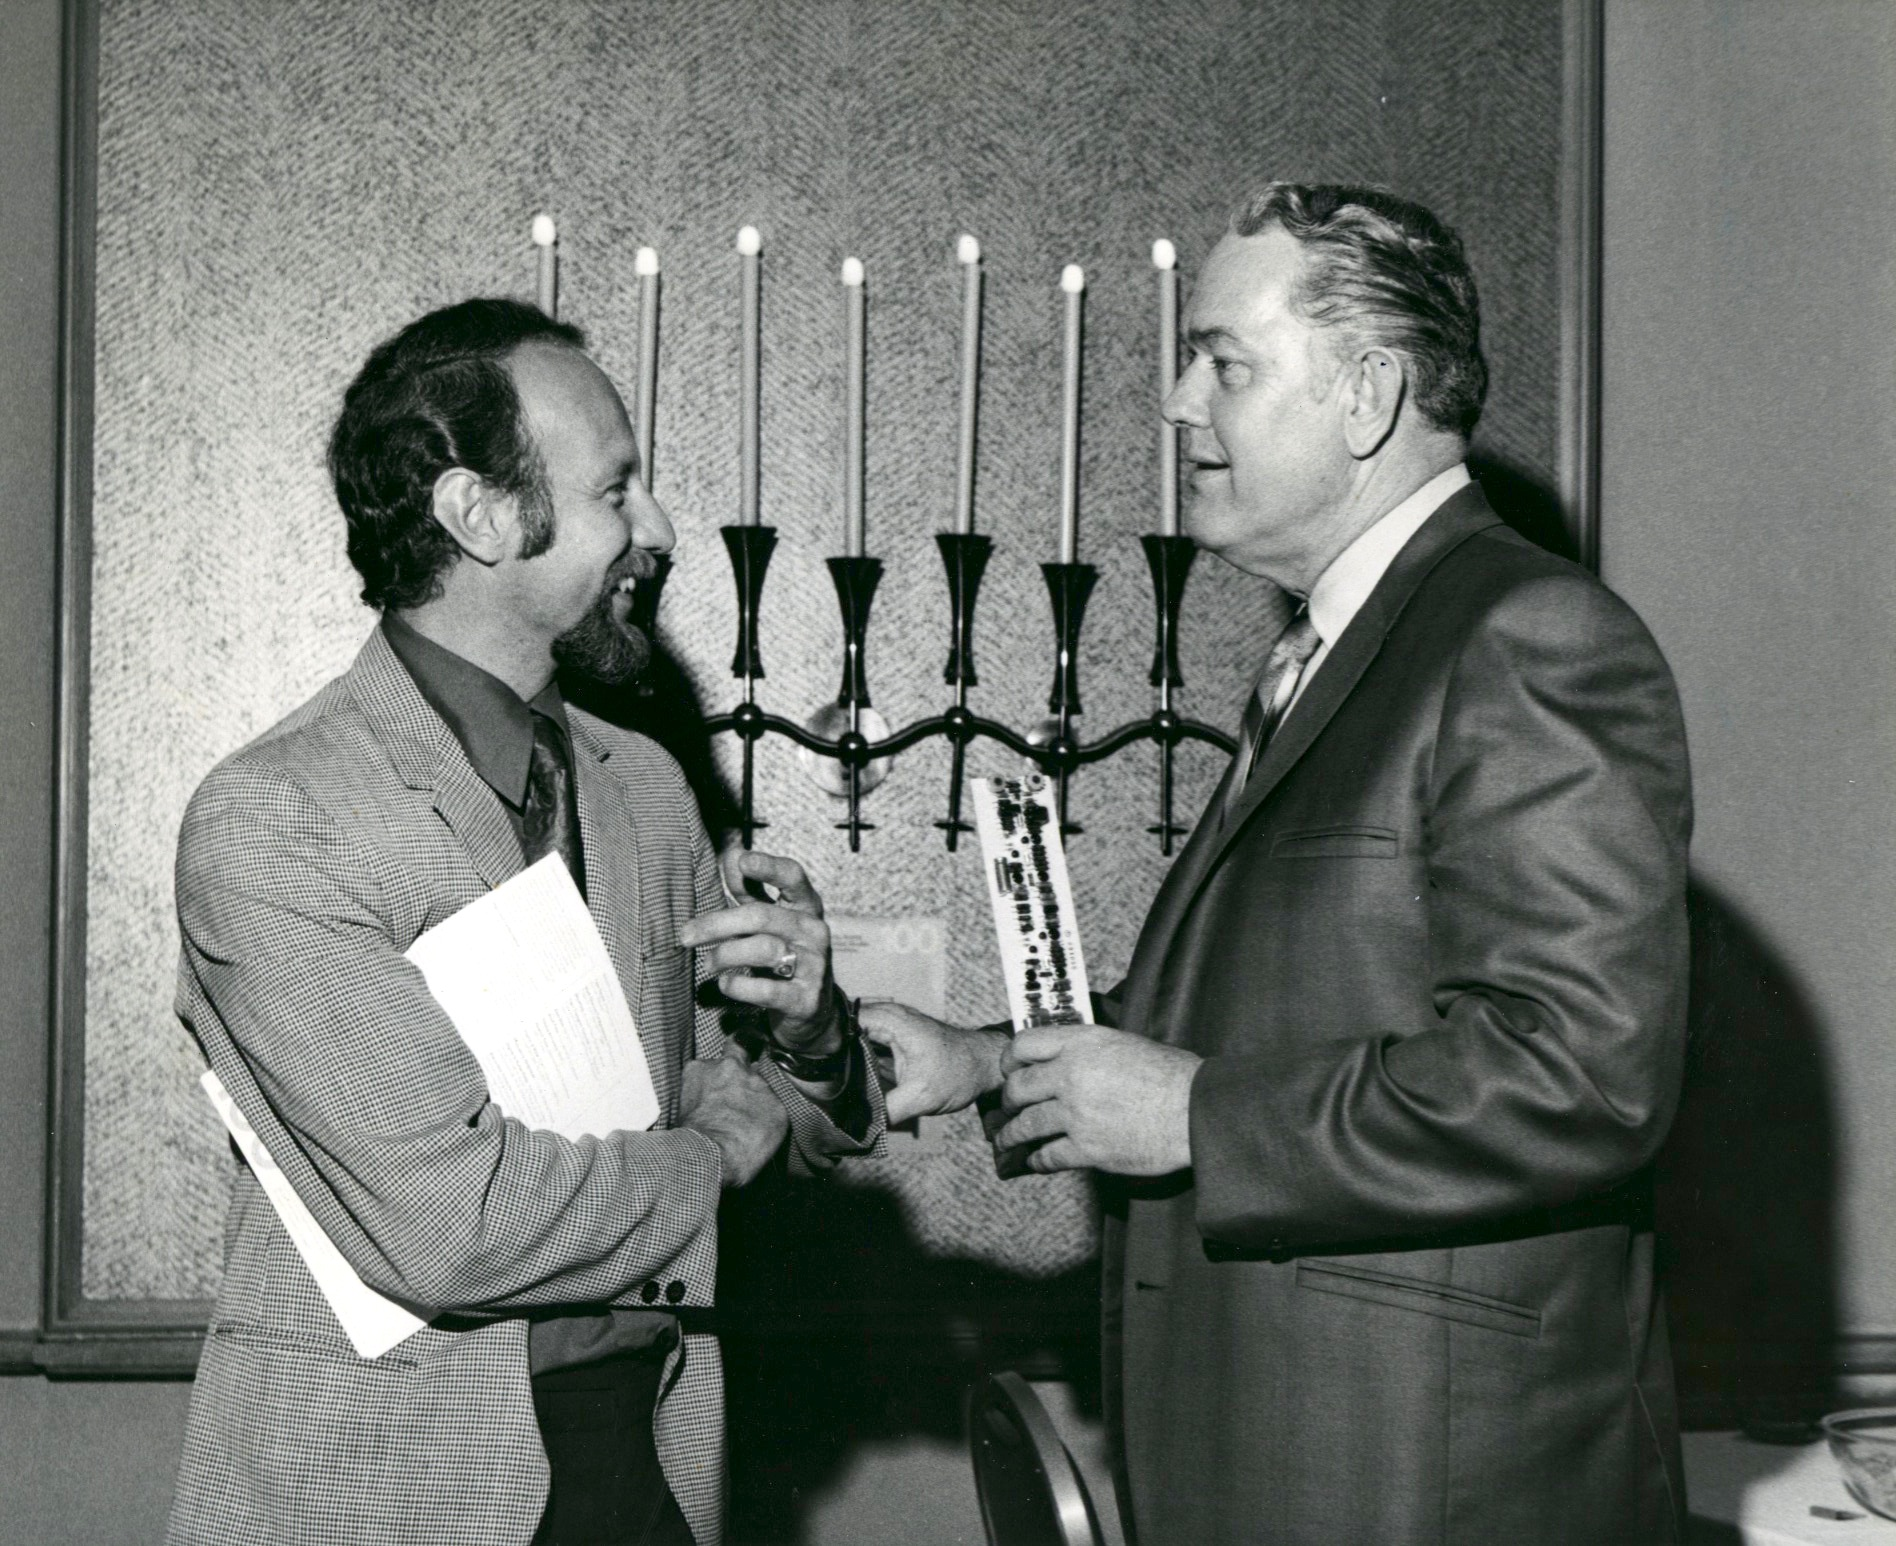 WILLIAM G. DILLEY PICTURED RIGHT